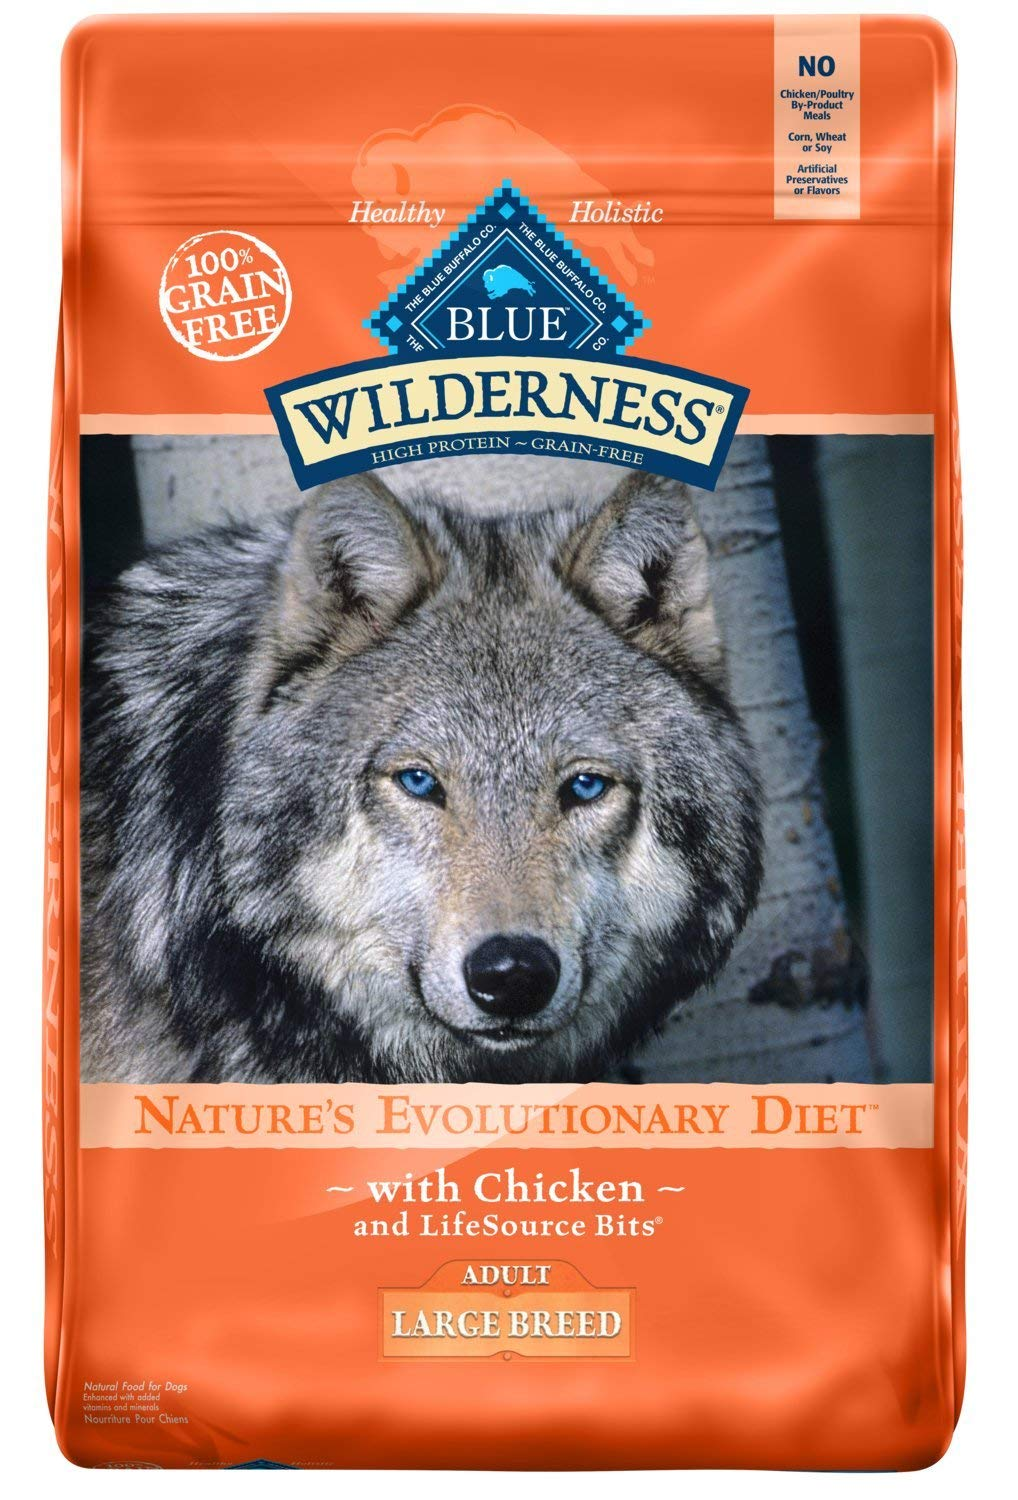 blue buffalo dog food for large breed puppy